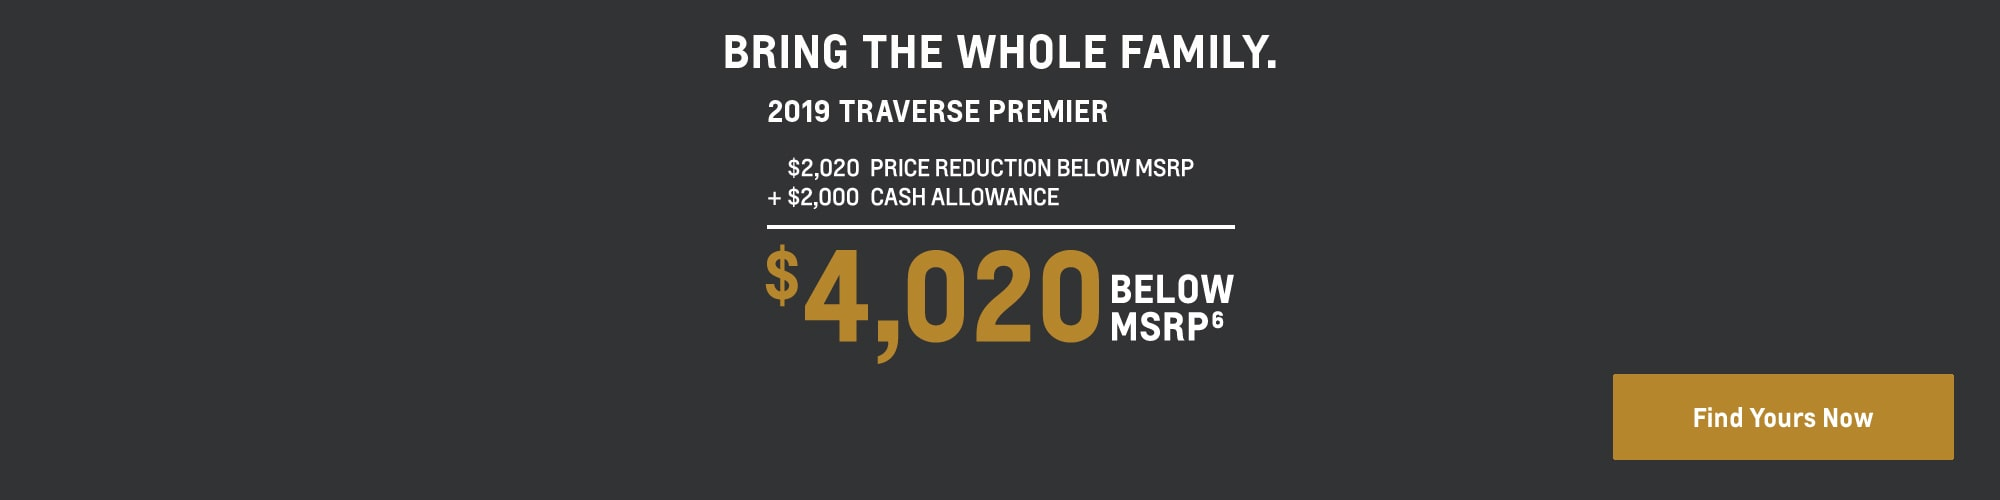 2019 Traverse: $4,020 Below MSRP